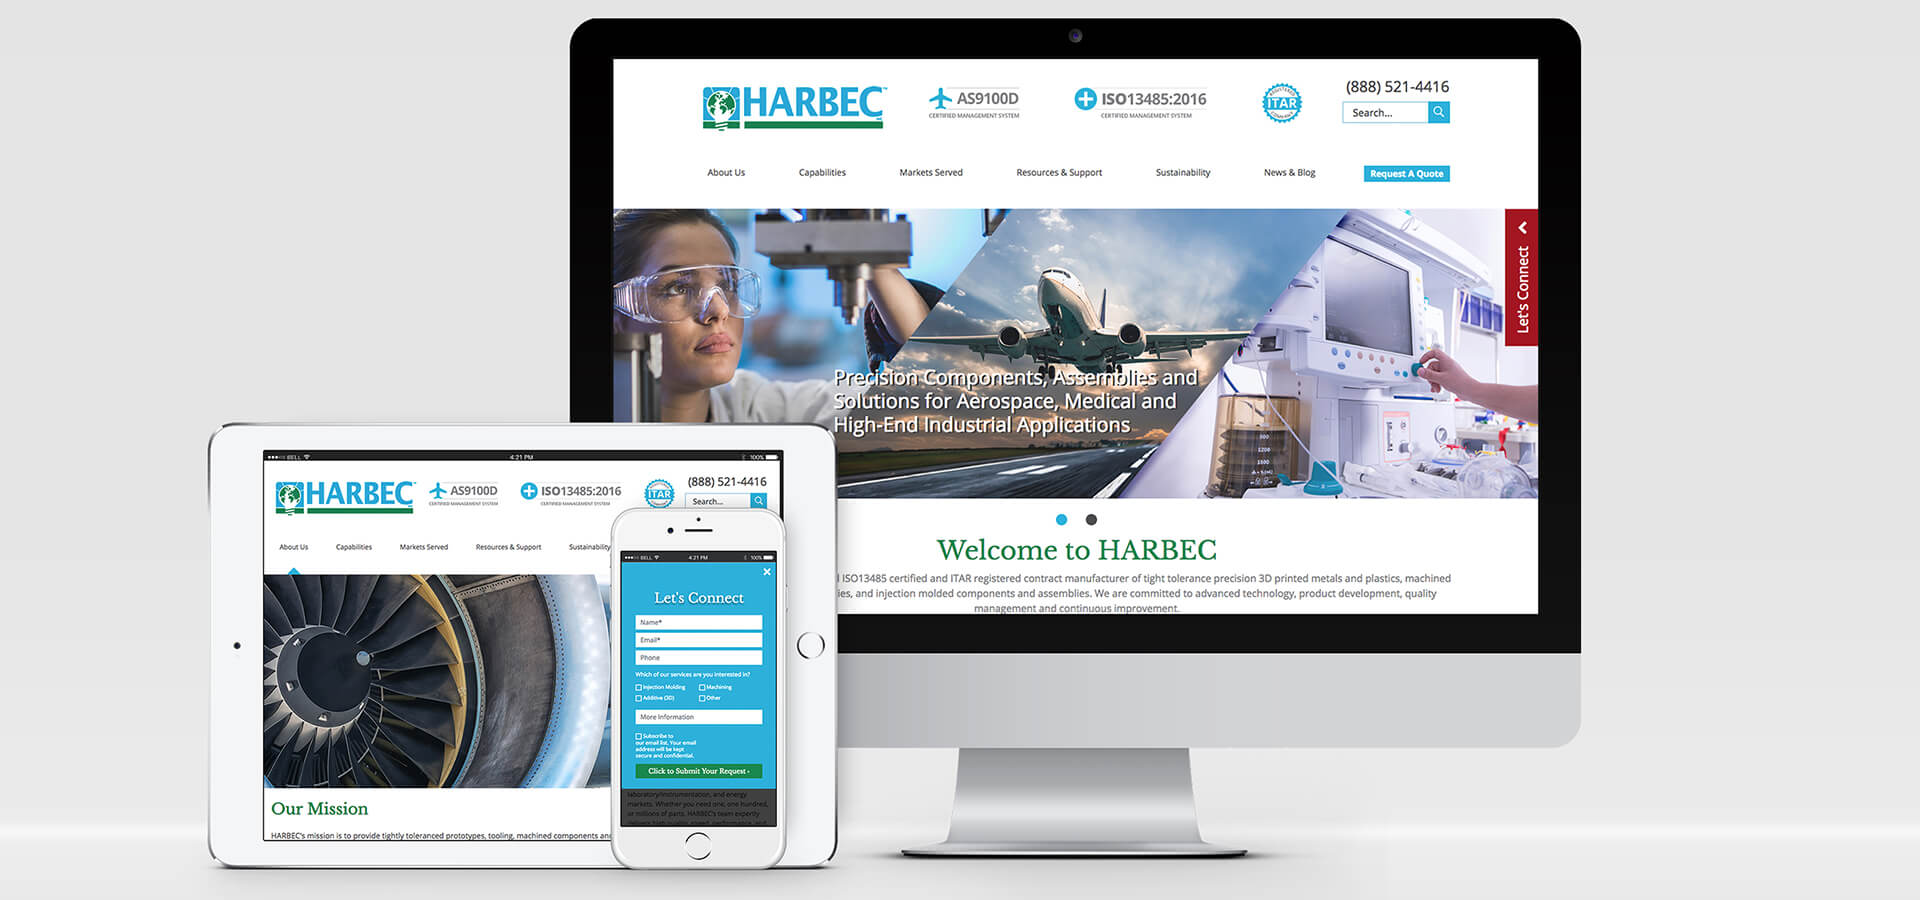 Harbec, Inc. new custom designed, responsive website